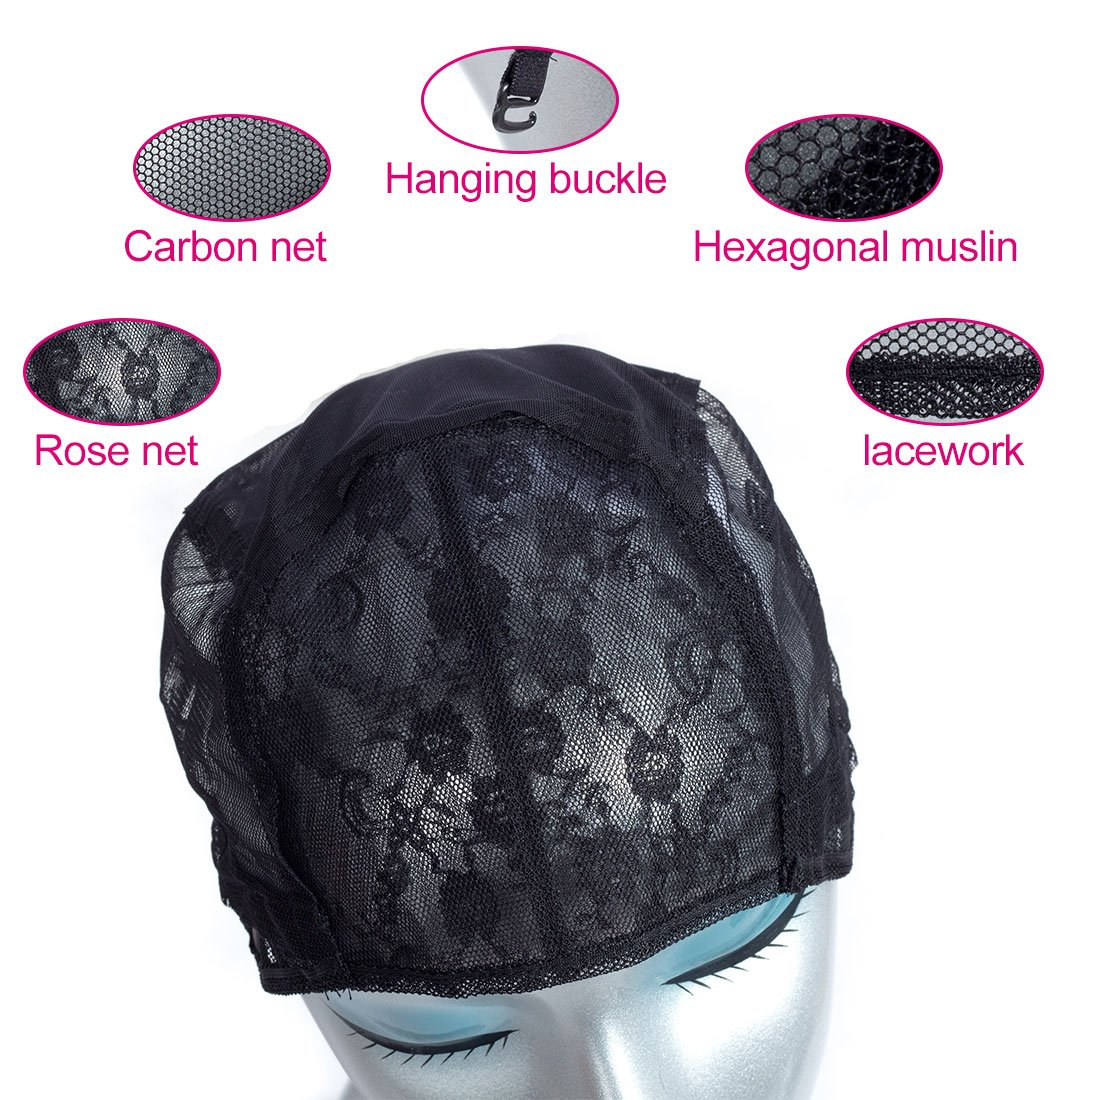 MQYQ 5pcs Black Double Lace Wig Caps For Making Wigs Hair Net with Adjustable Straps Swiss Lace by MQYQ (Image #1)